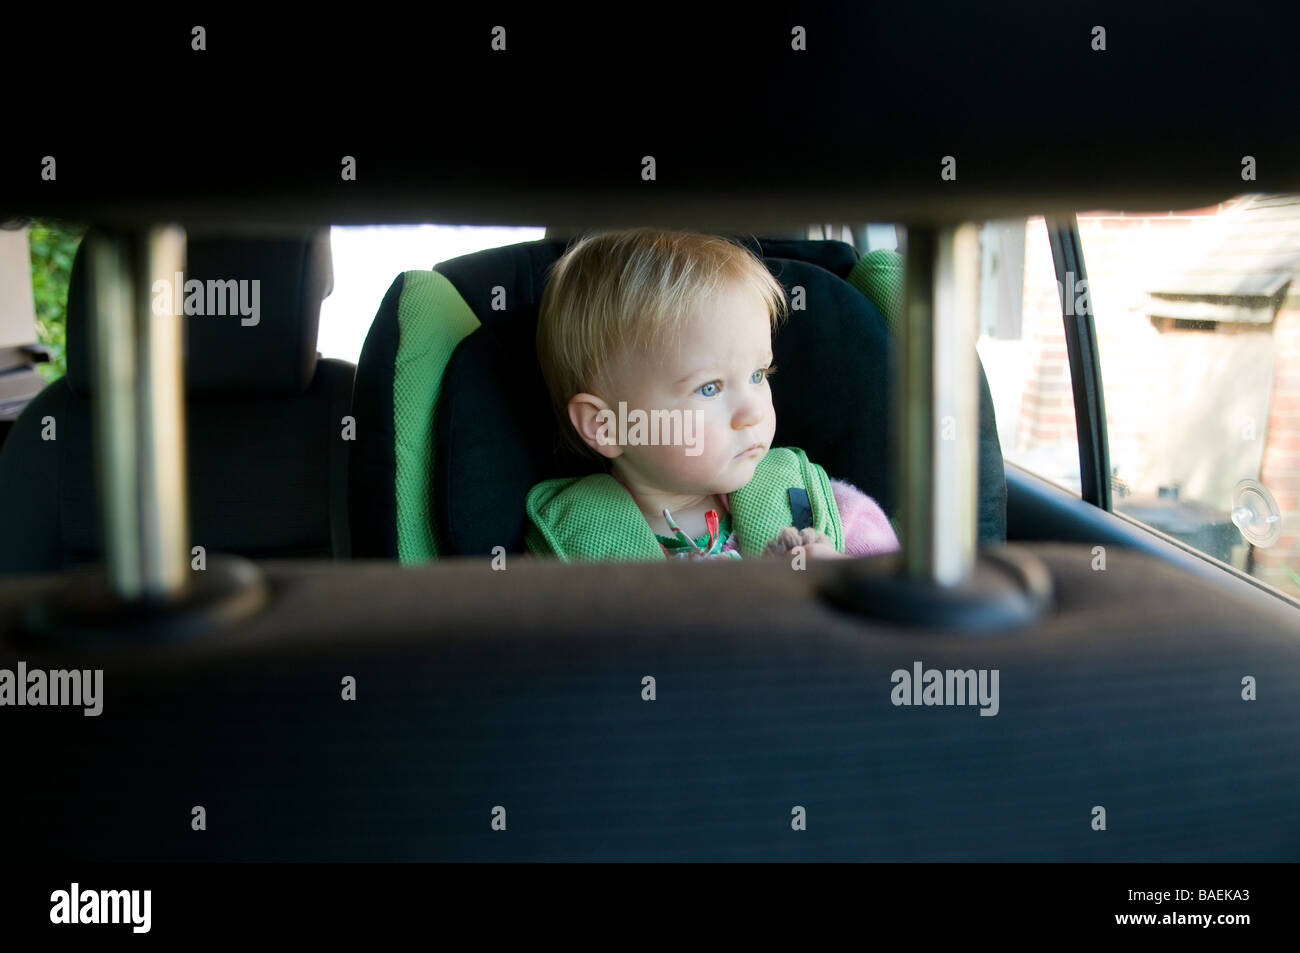 BABY GIRL CHILD IN CAR SEAT LOOKING OUT OF THE REAR WINDOW - Stock Image